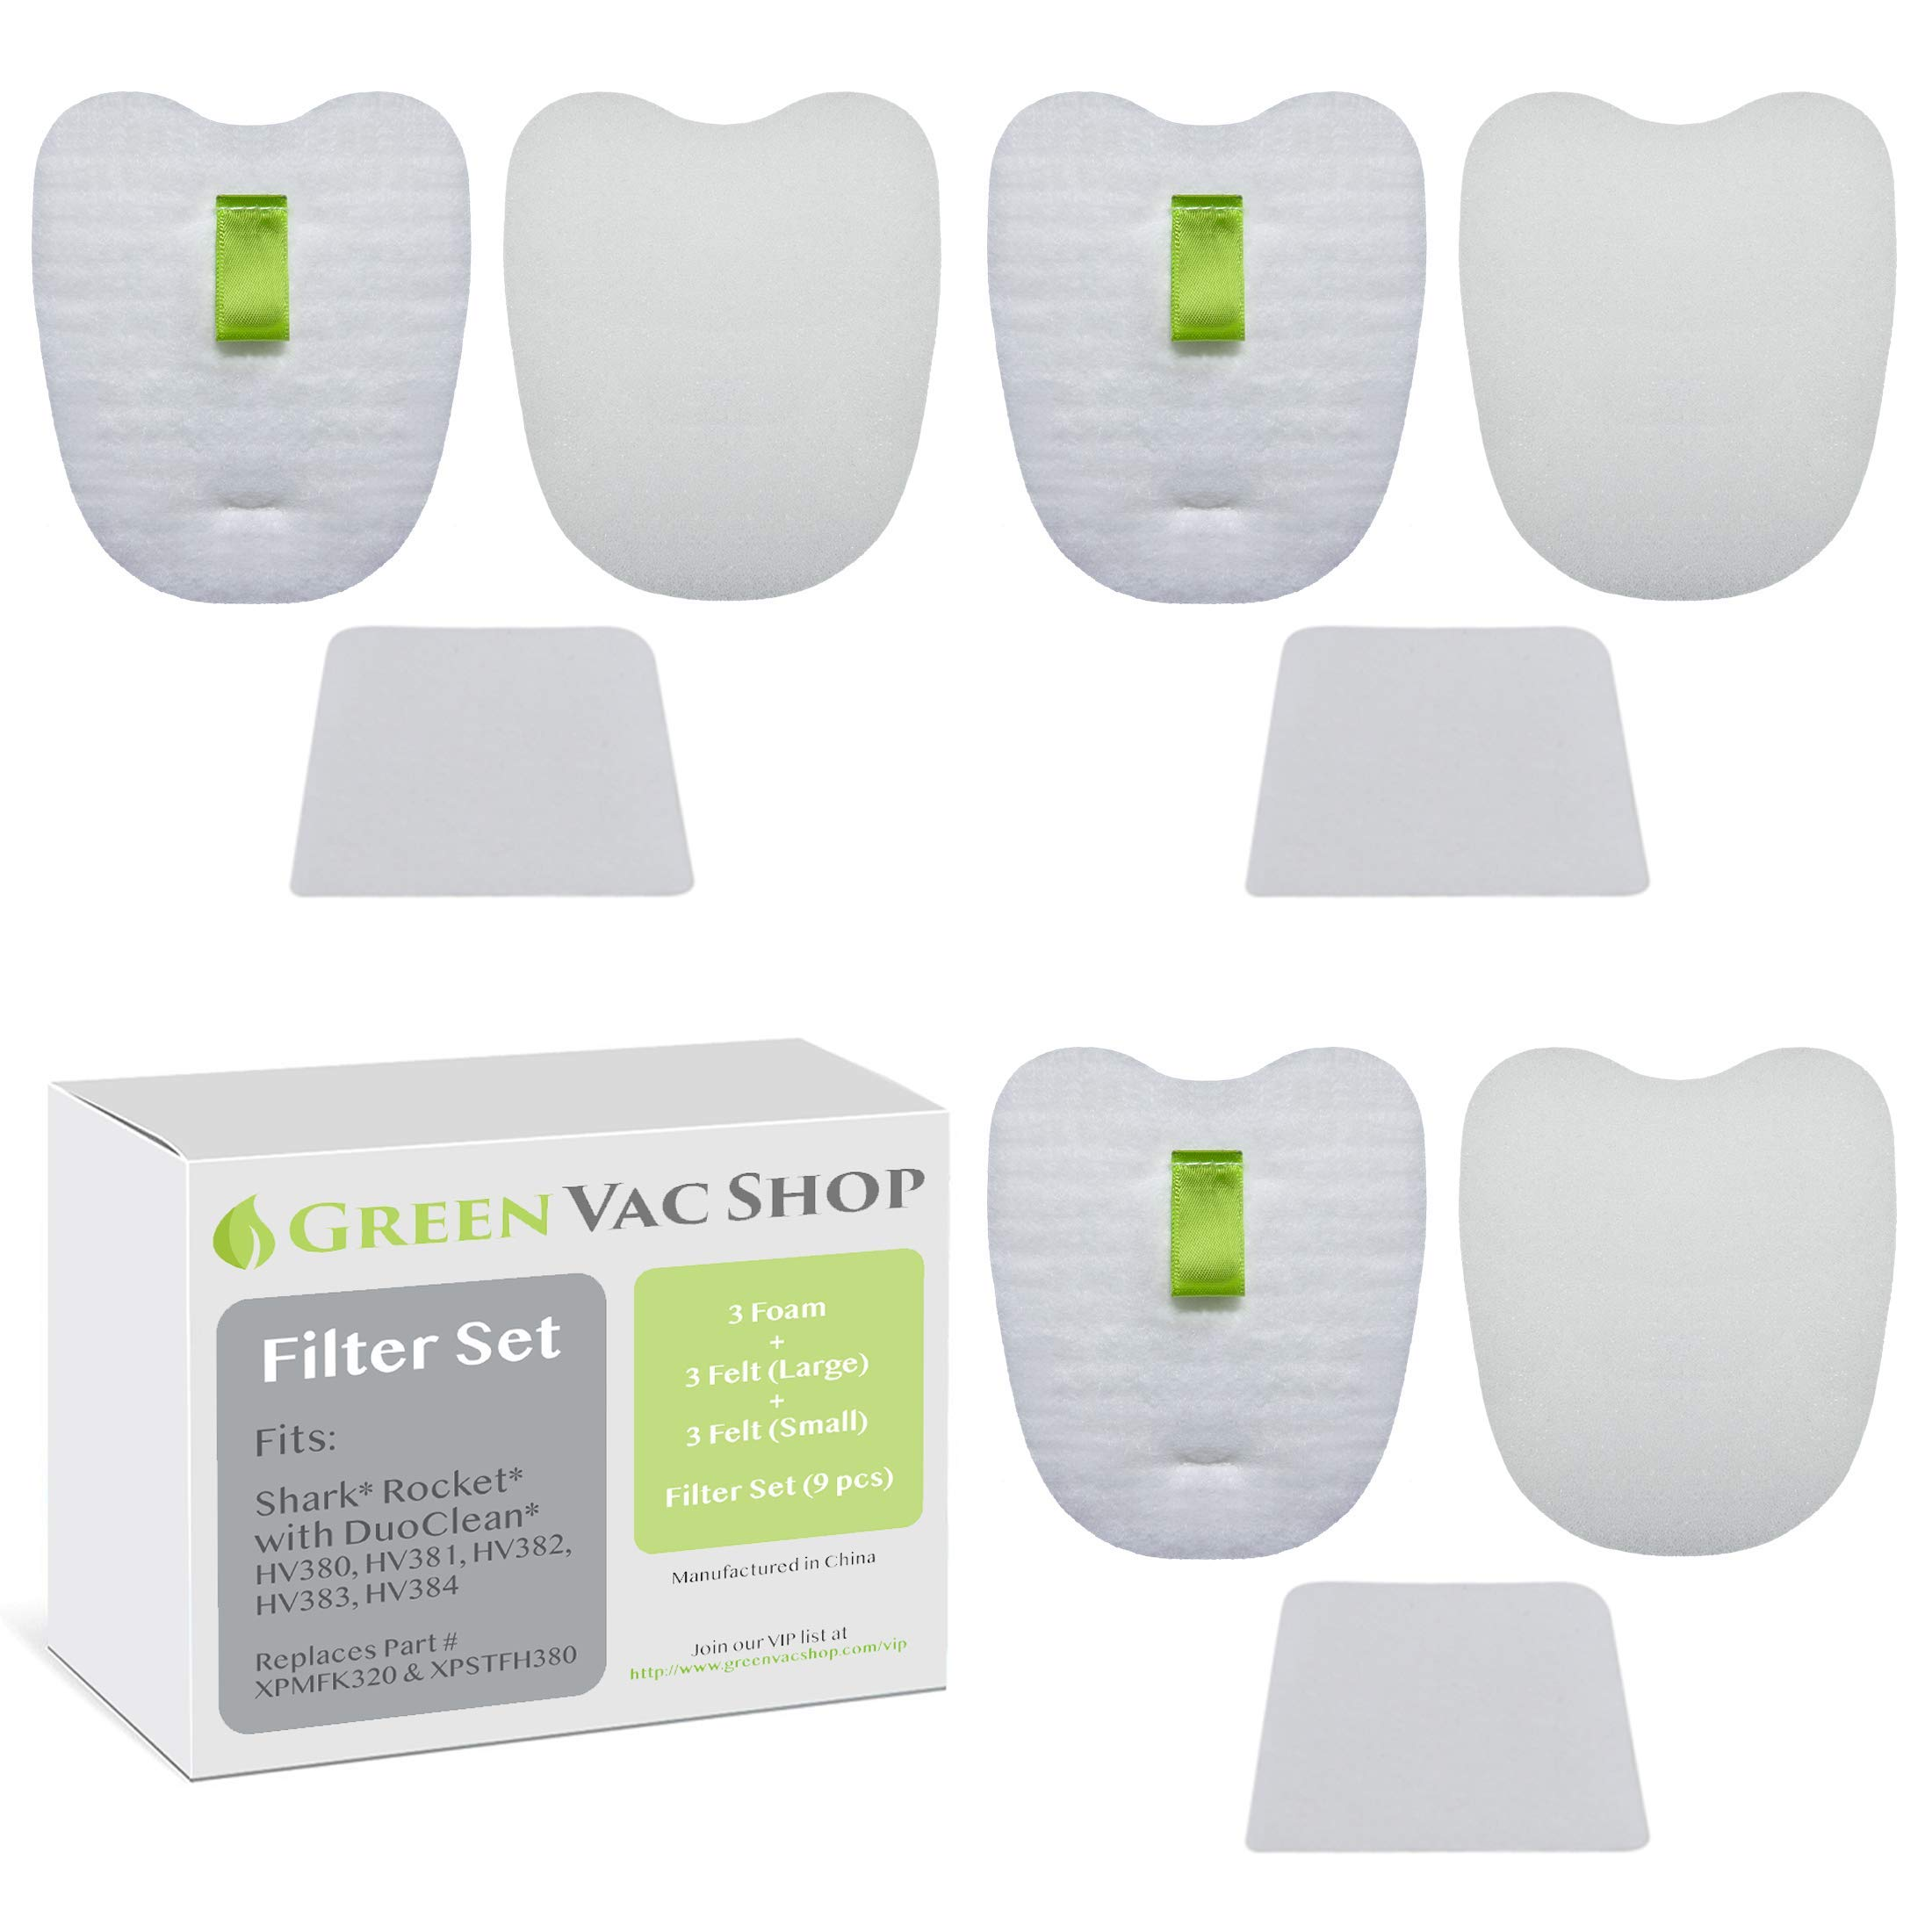 GreenVacShop Shark Rocket DuoClean HV380, HV380W, HV381, HV382, HV383, HV384Q Updated Replacement Filter Set, 6 Pre-Filters (3 Foam+3 Felt) and 3 Post-Filters, Replaces Shark Part# XPMFK320 XPSTFH380 by GreenVacShop